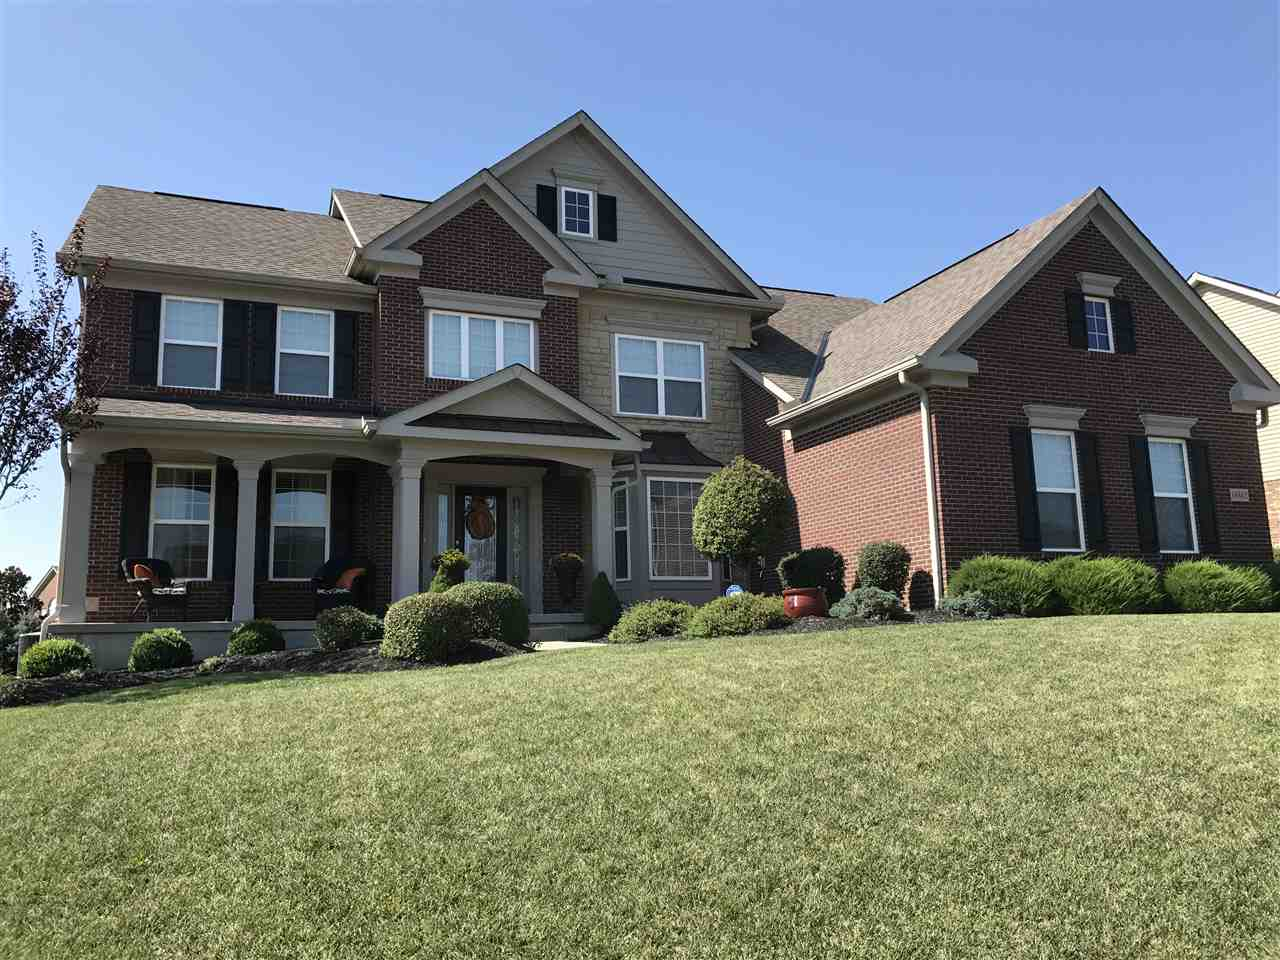 Photo 1 for 14842 Cool Springs Blvd Union, KY 41091